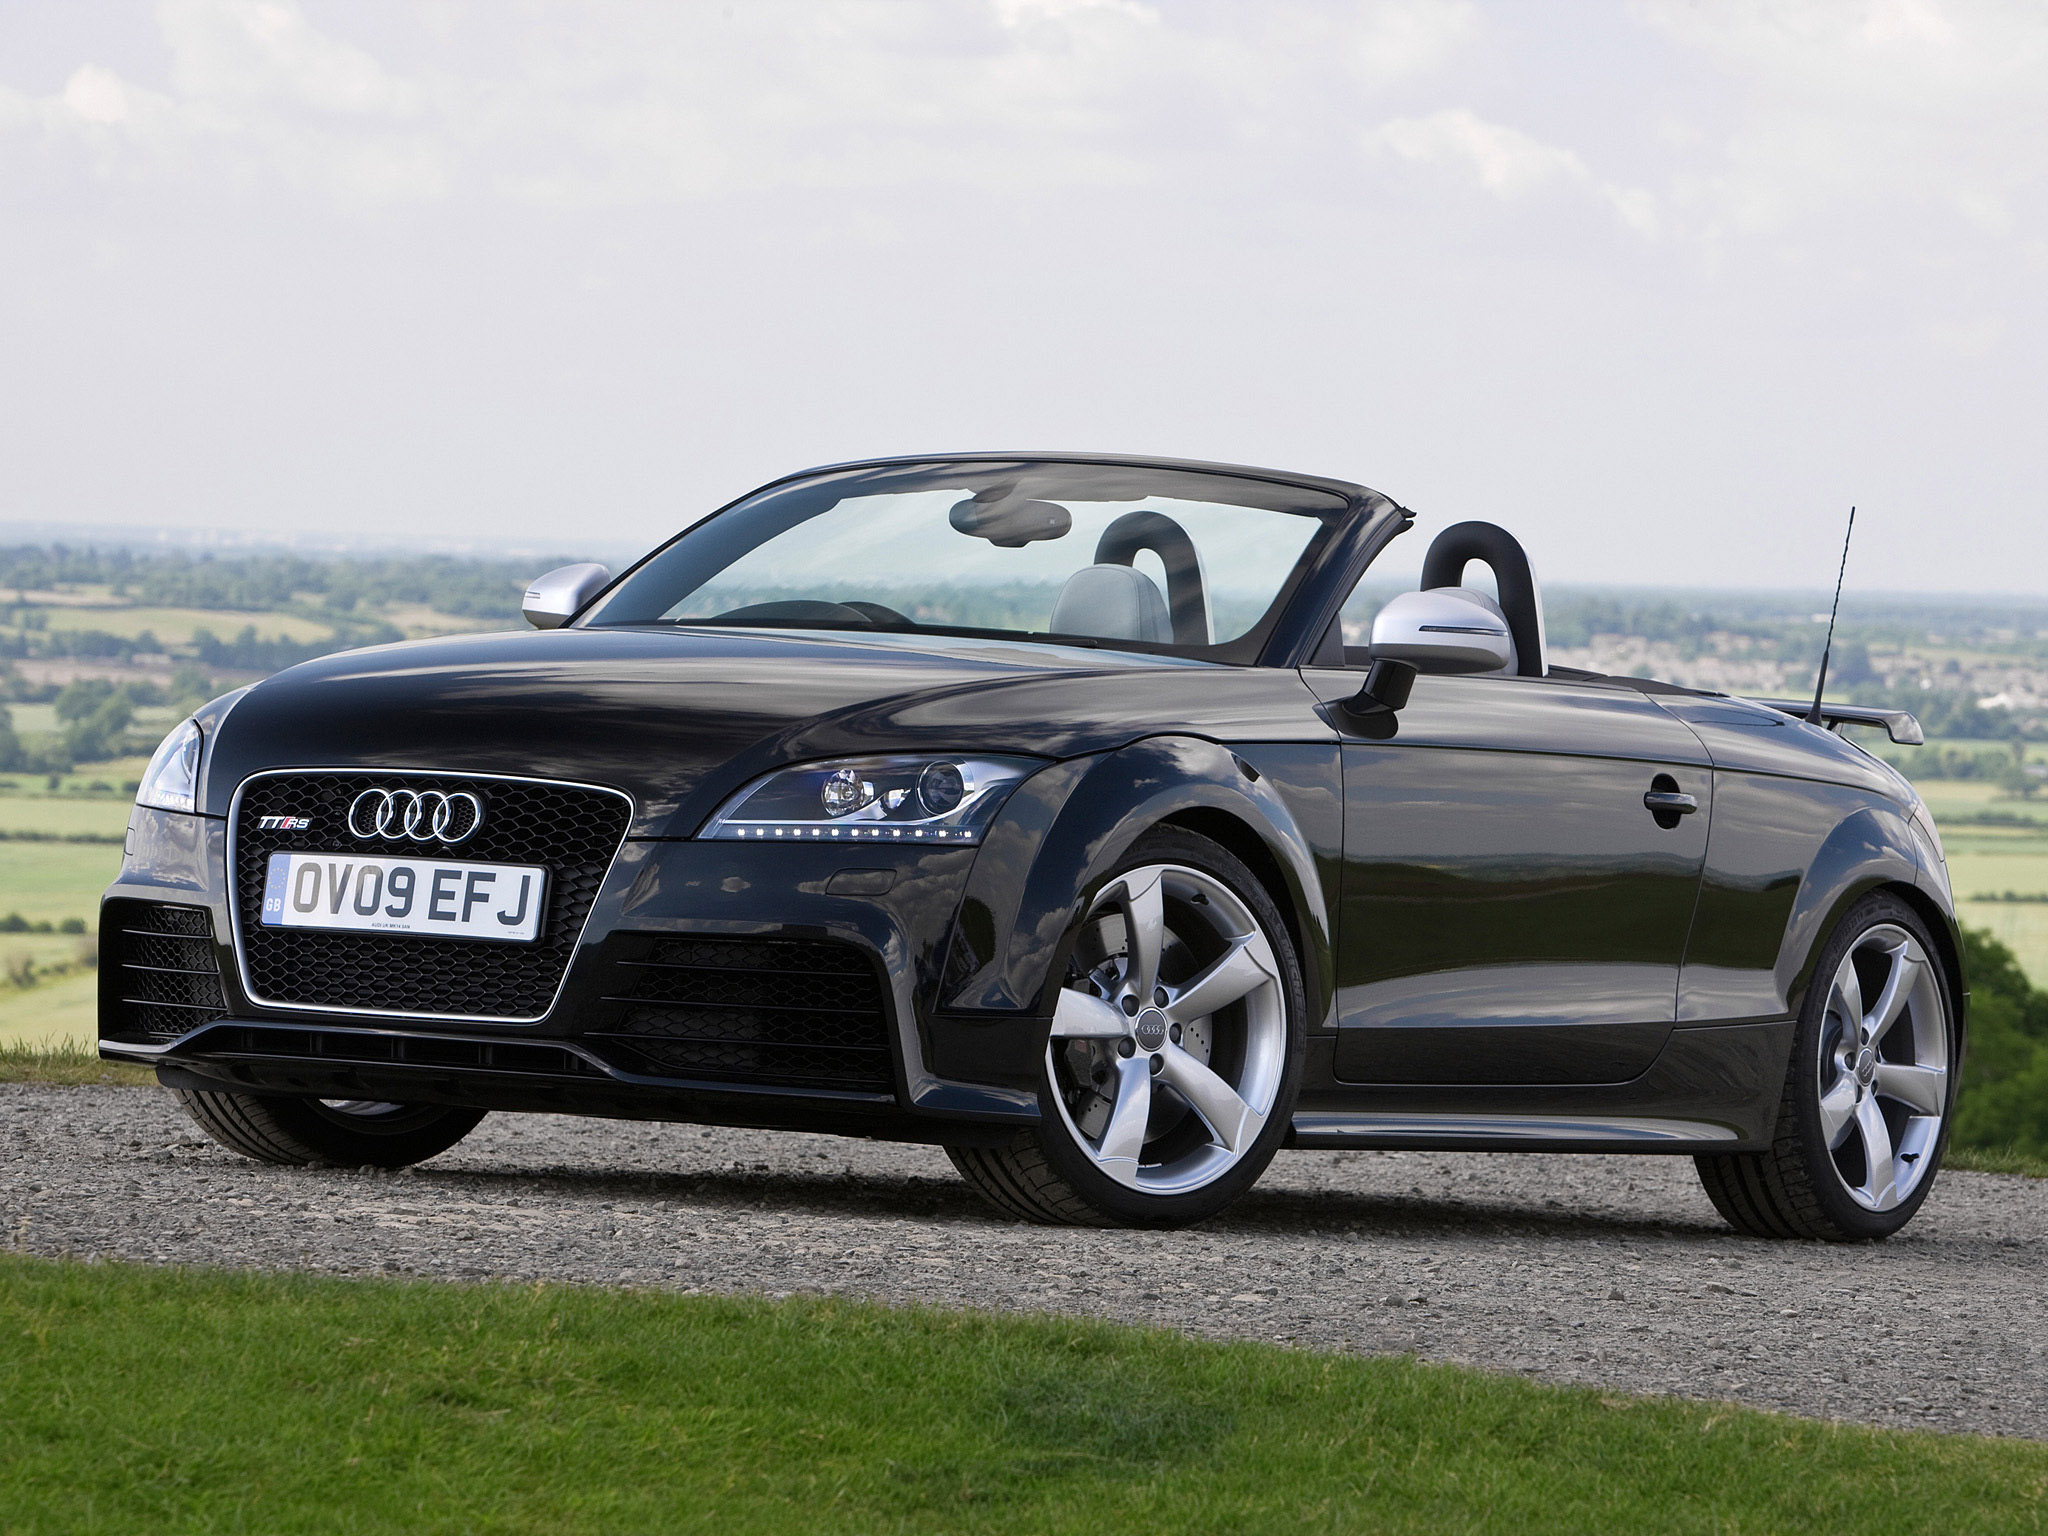 audi tt rs roadster uk 8j 2009 audi tt rs roadster uk 8j. Black Bedroom Furniture Sets. Home Design Ideas